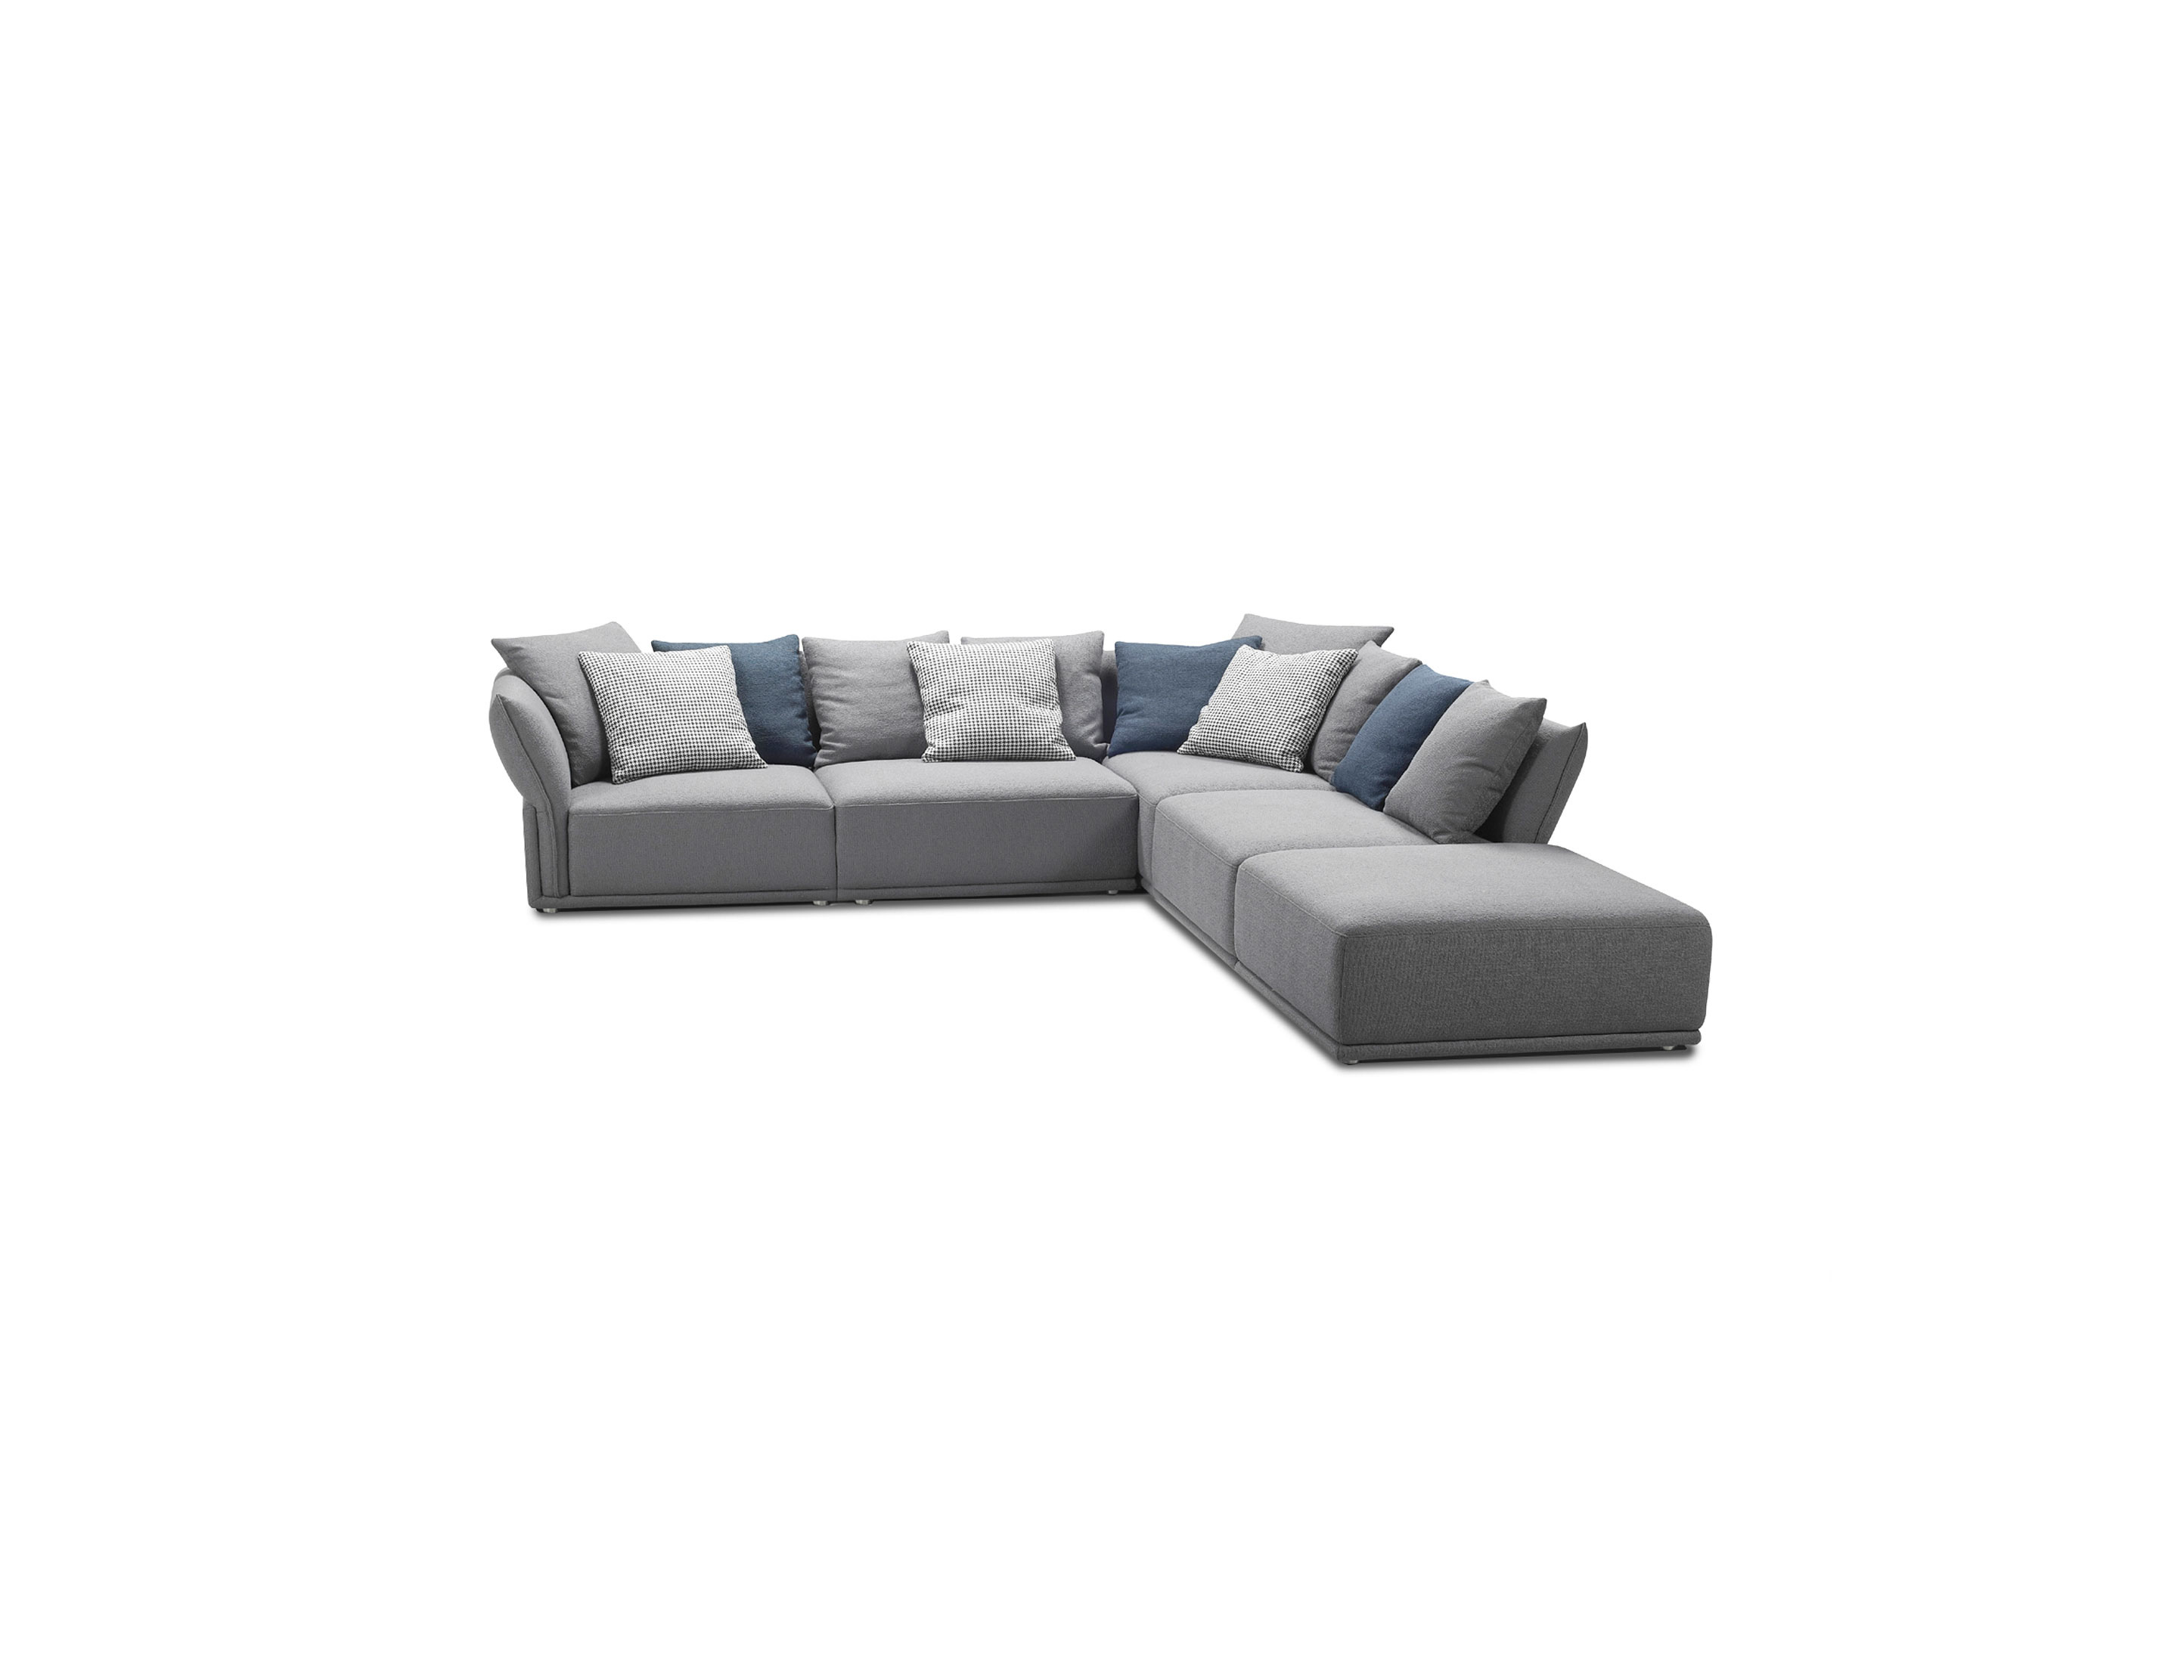 Stratus Sofa Modern Modular Sectional Set Of 5 Expand Furniture Folding Tables Smarter Wall Beds Space Savers